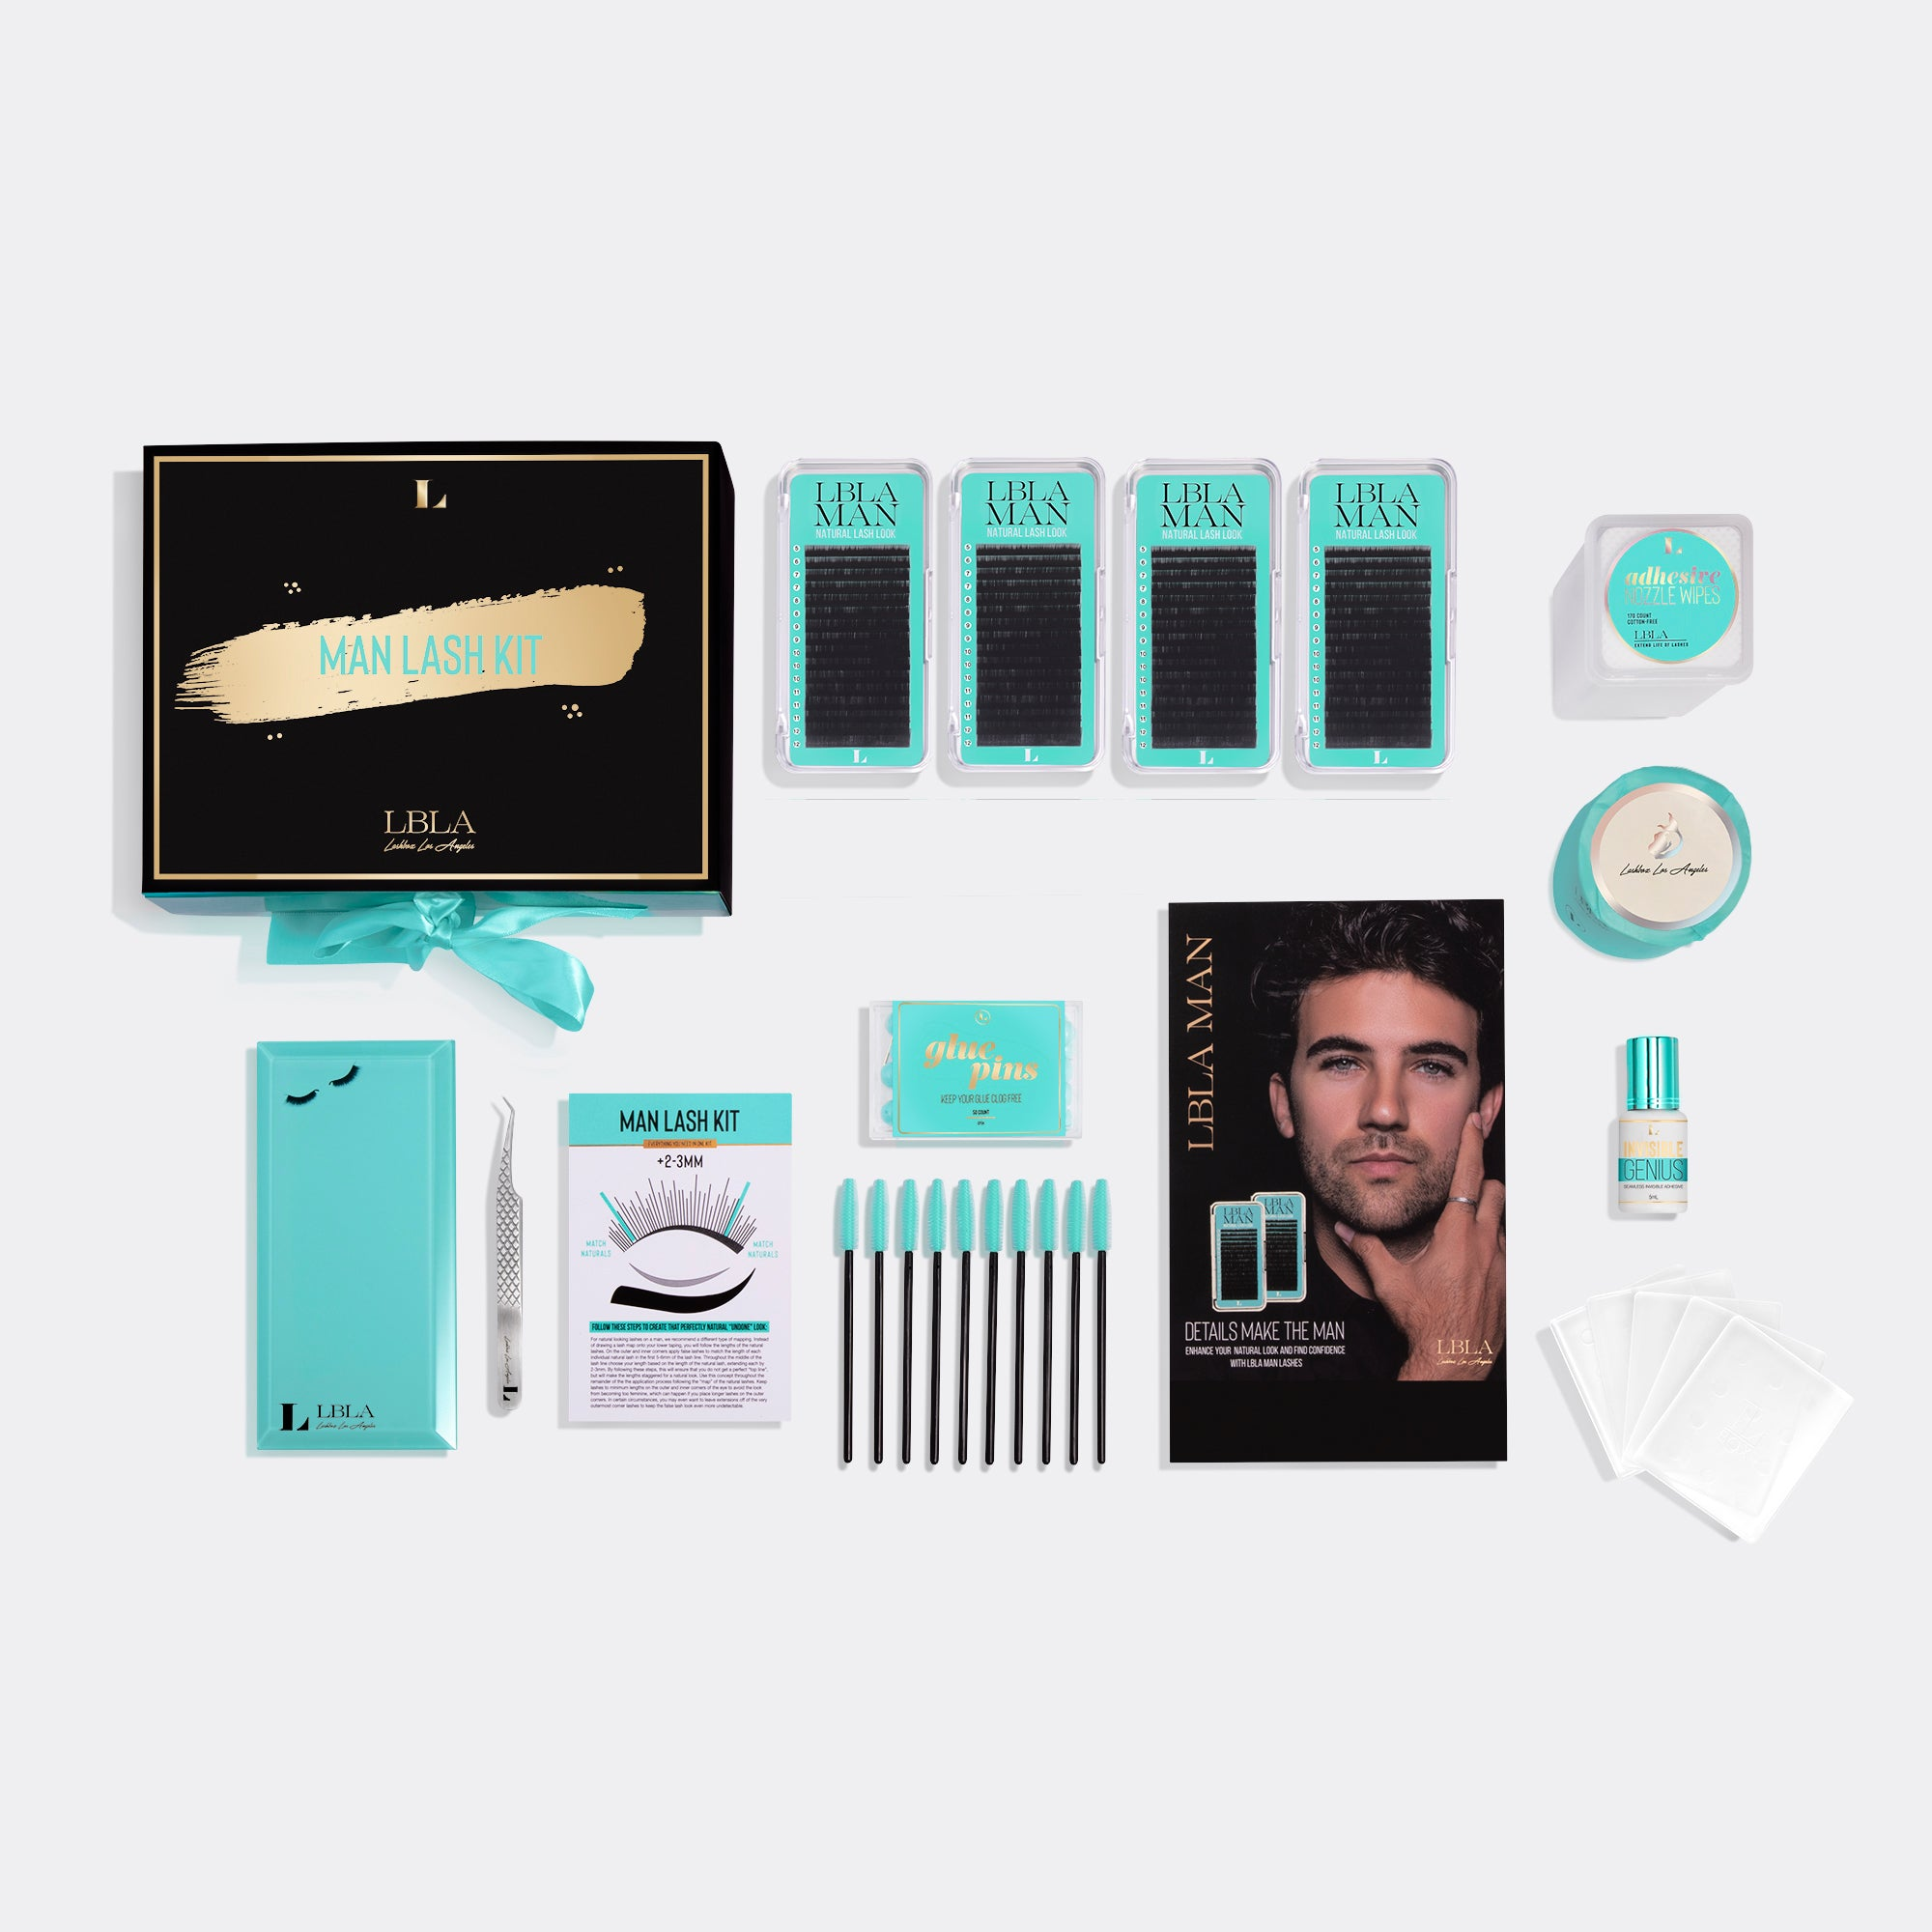 Man Lash Kit